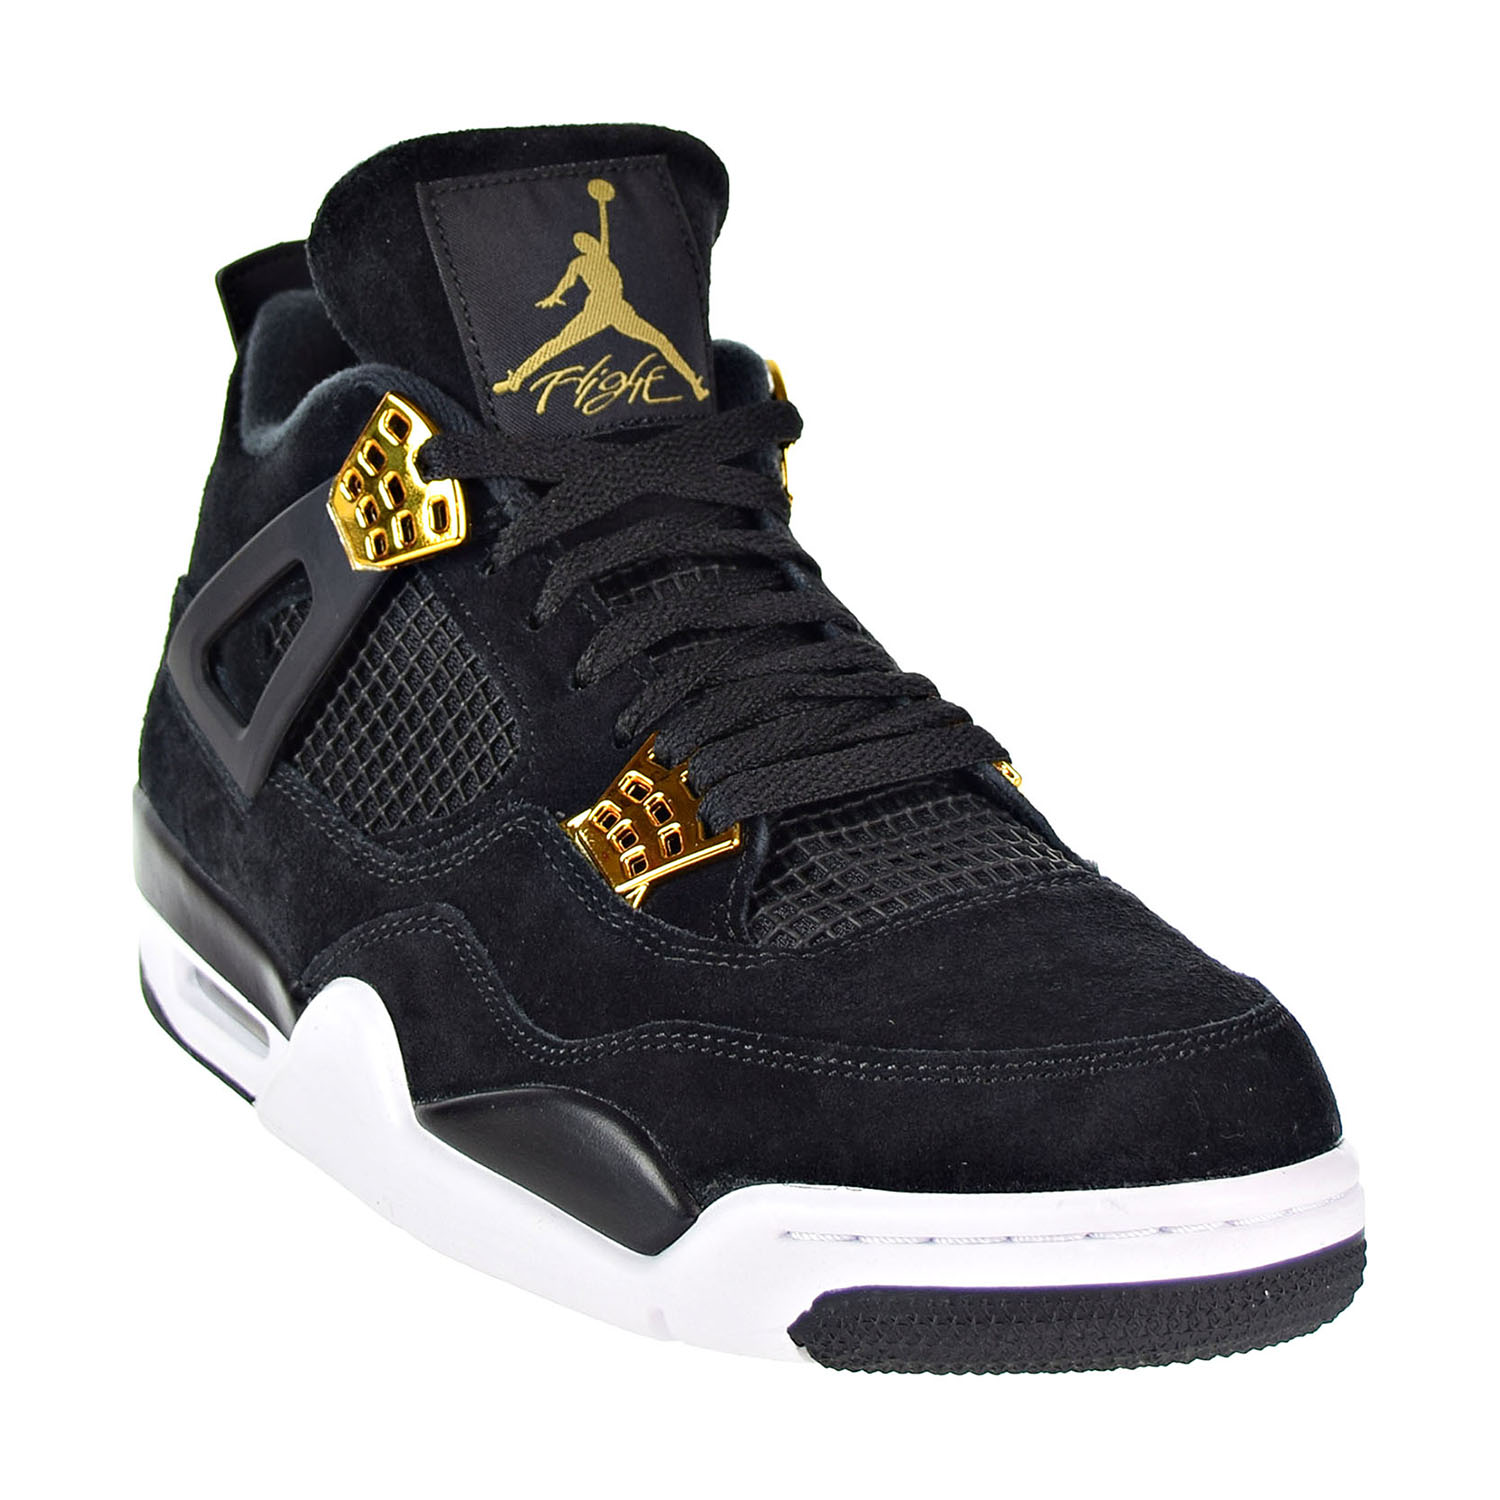 c10da28b152e Air Jordan Retro 4 Men s Shoes Black Metallic Gold White 308497-032 ...